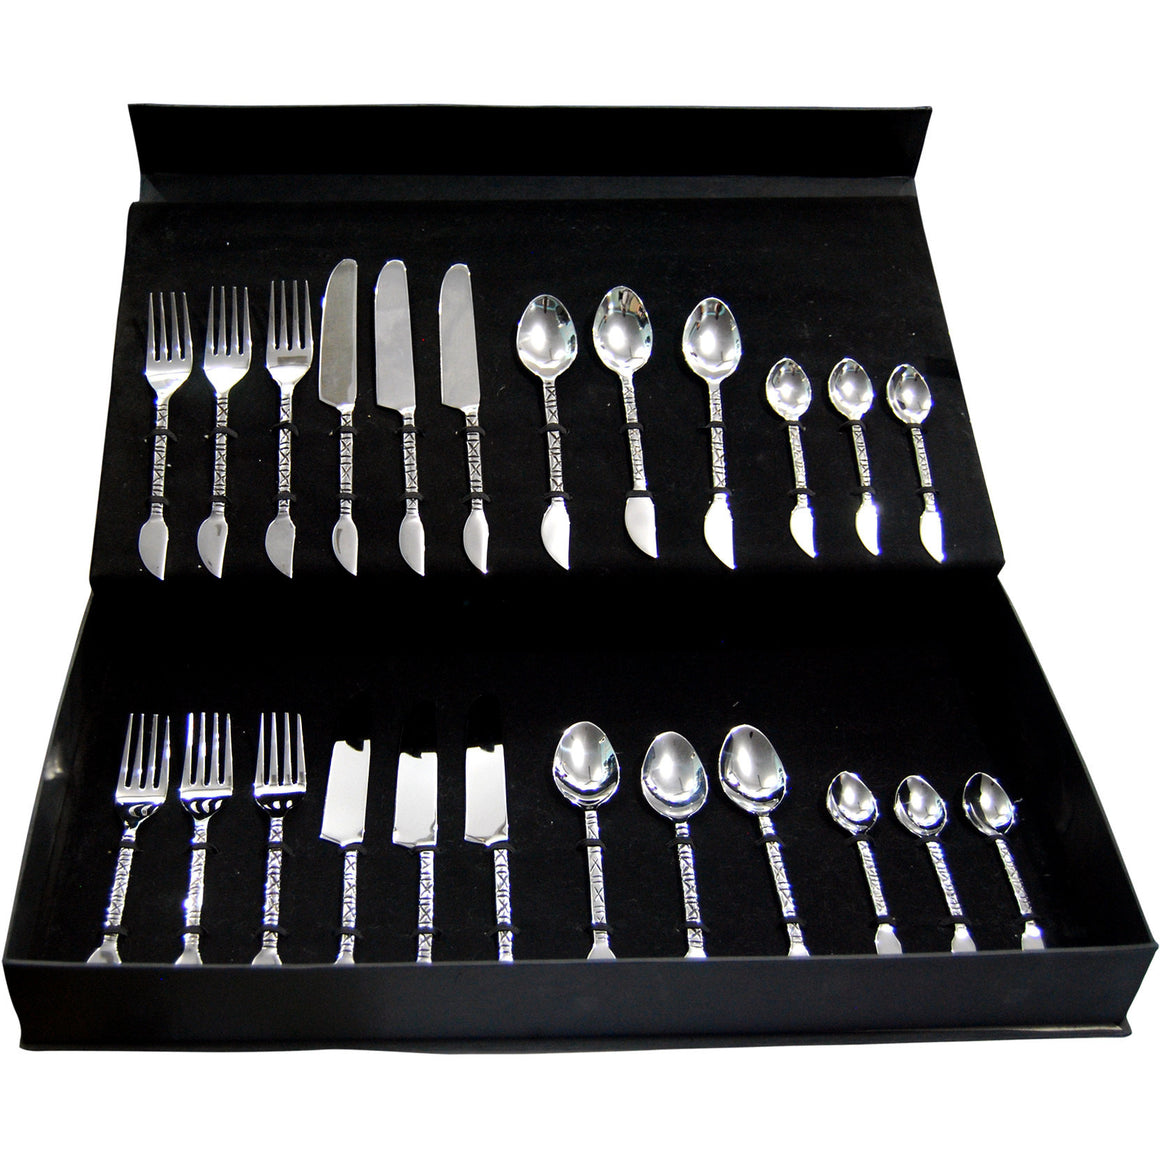 CROSS DESIGN CUTLERY (24 pcs), Cutlery Set, Fennel and Fork